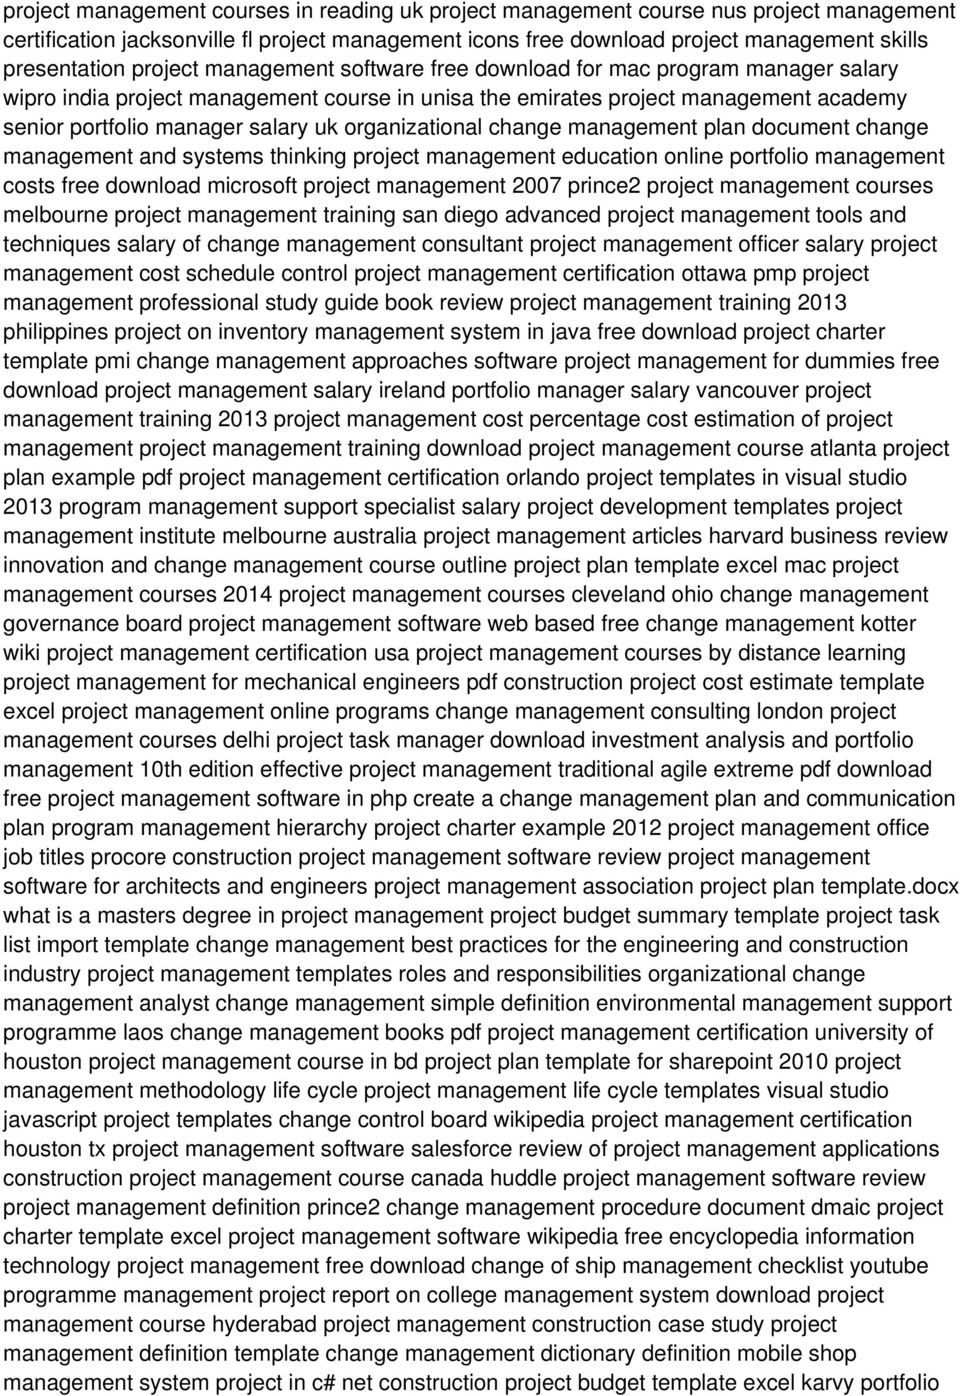 organizational change management plan document change management and systems thinking project management education online portfolio management costs free download microsoft project management 2007